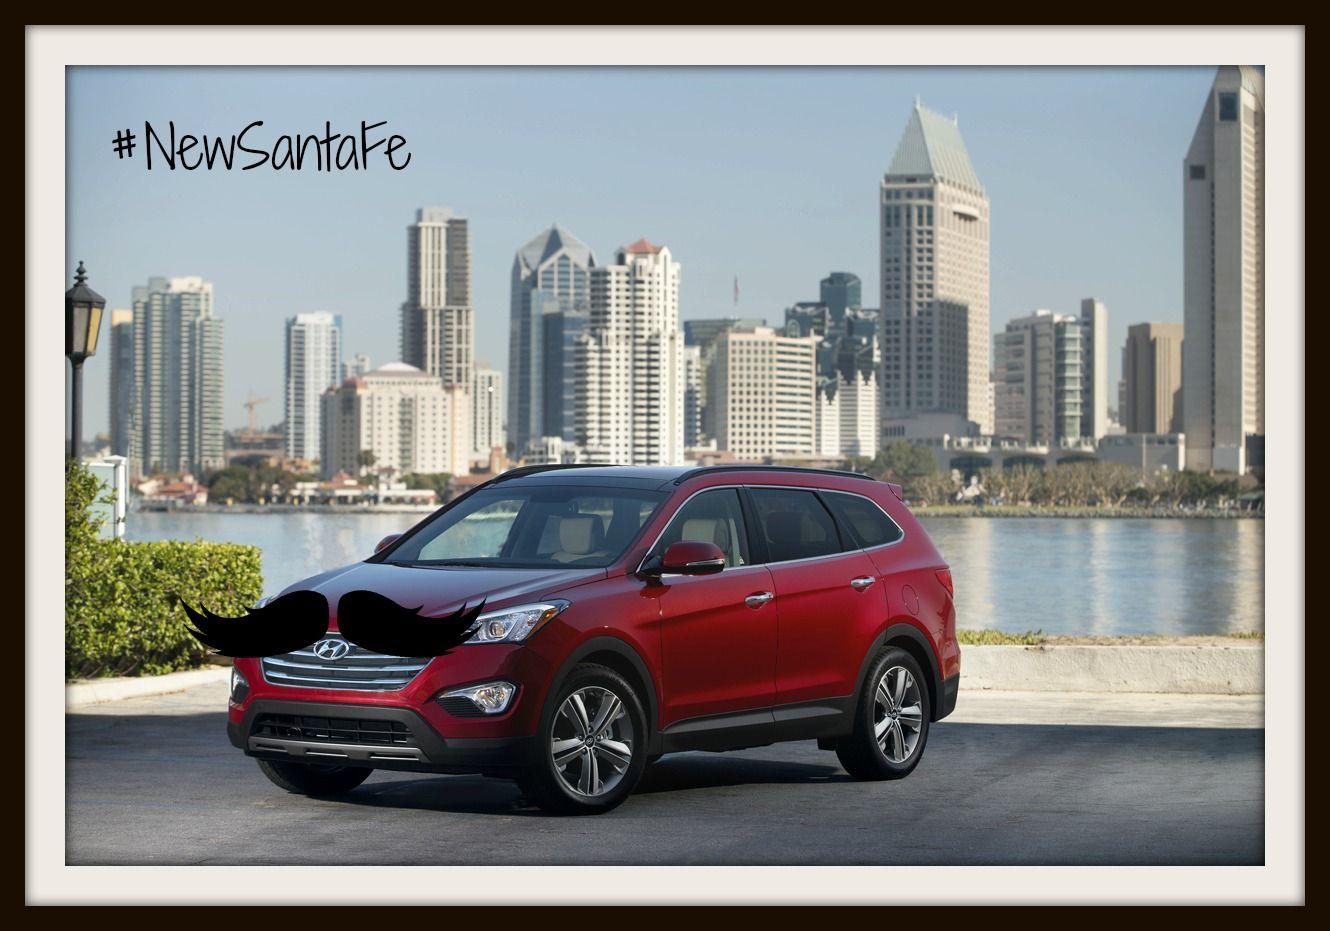 Marvelous Mustaches of San Diego NewSantaFe Hyundai